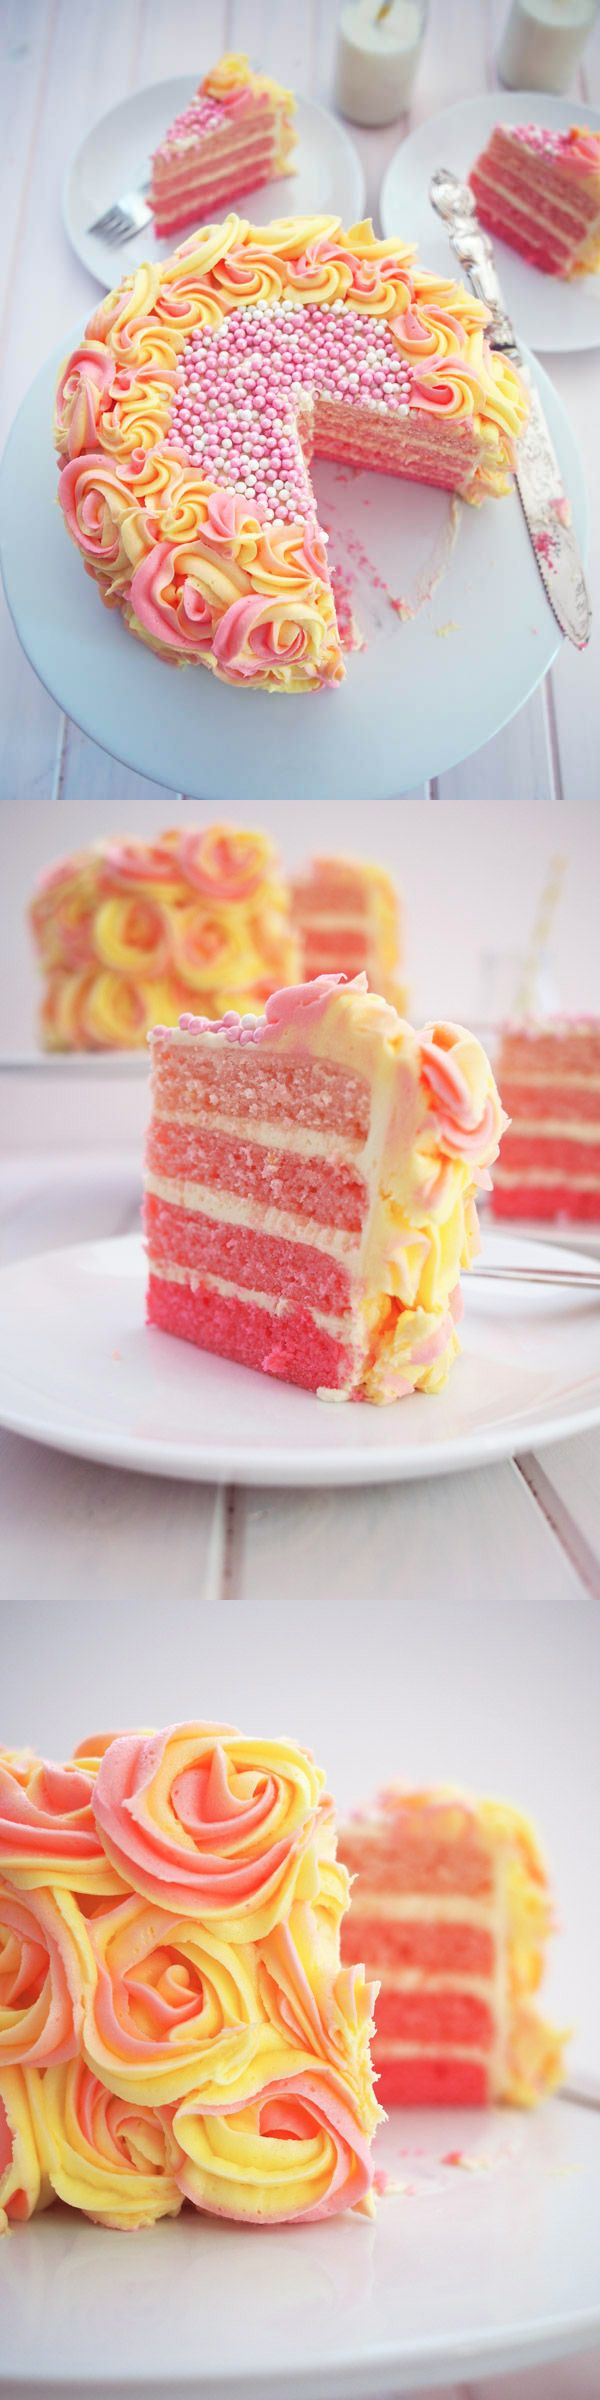 pink lemonade cake recipe layers spring summer icing birthday This is beautiful! I don't have the patience to make it look this great. Who wants to help!?